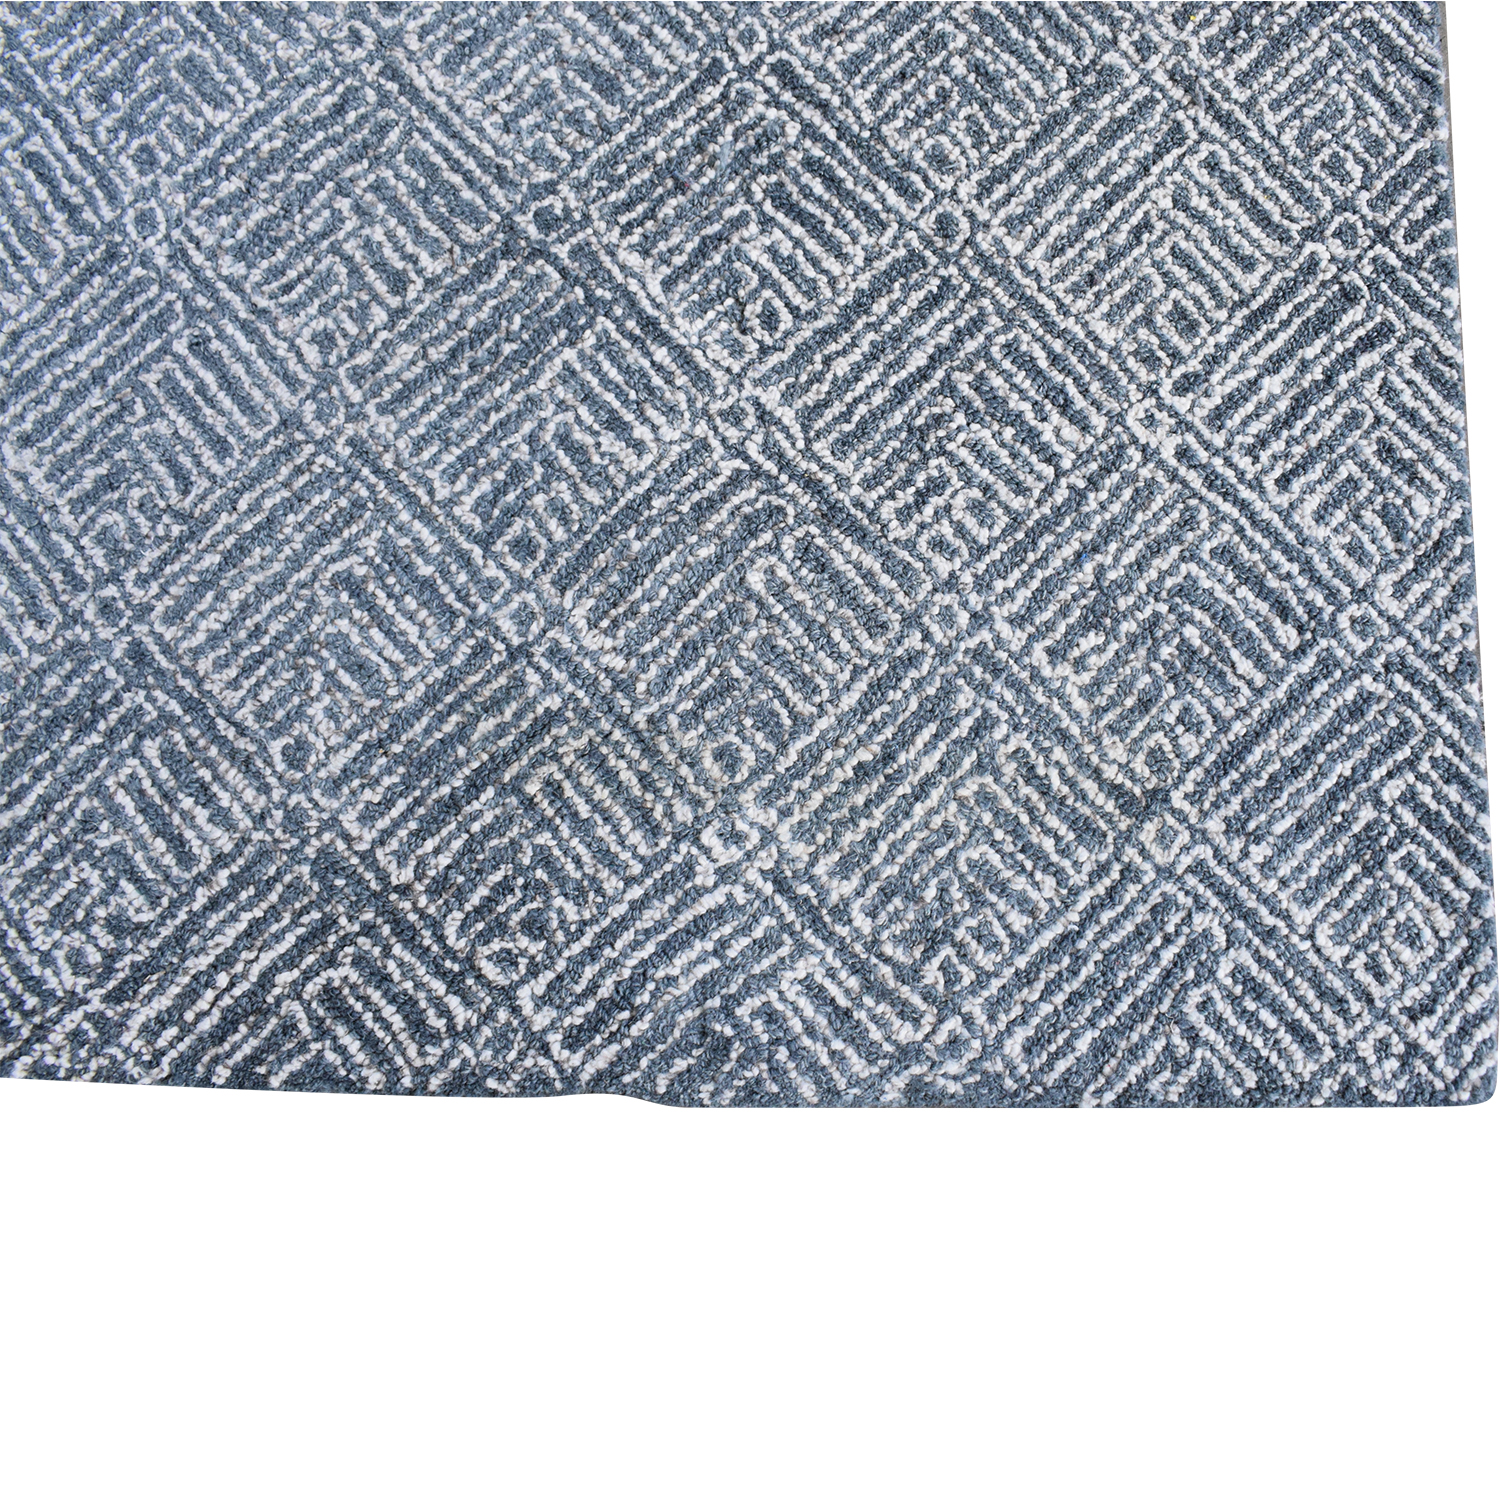 Crate & Barrel Crate & Barrel Curtis Indigo Wool-Blend Rug blue & white